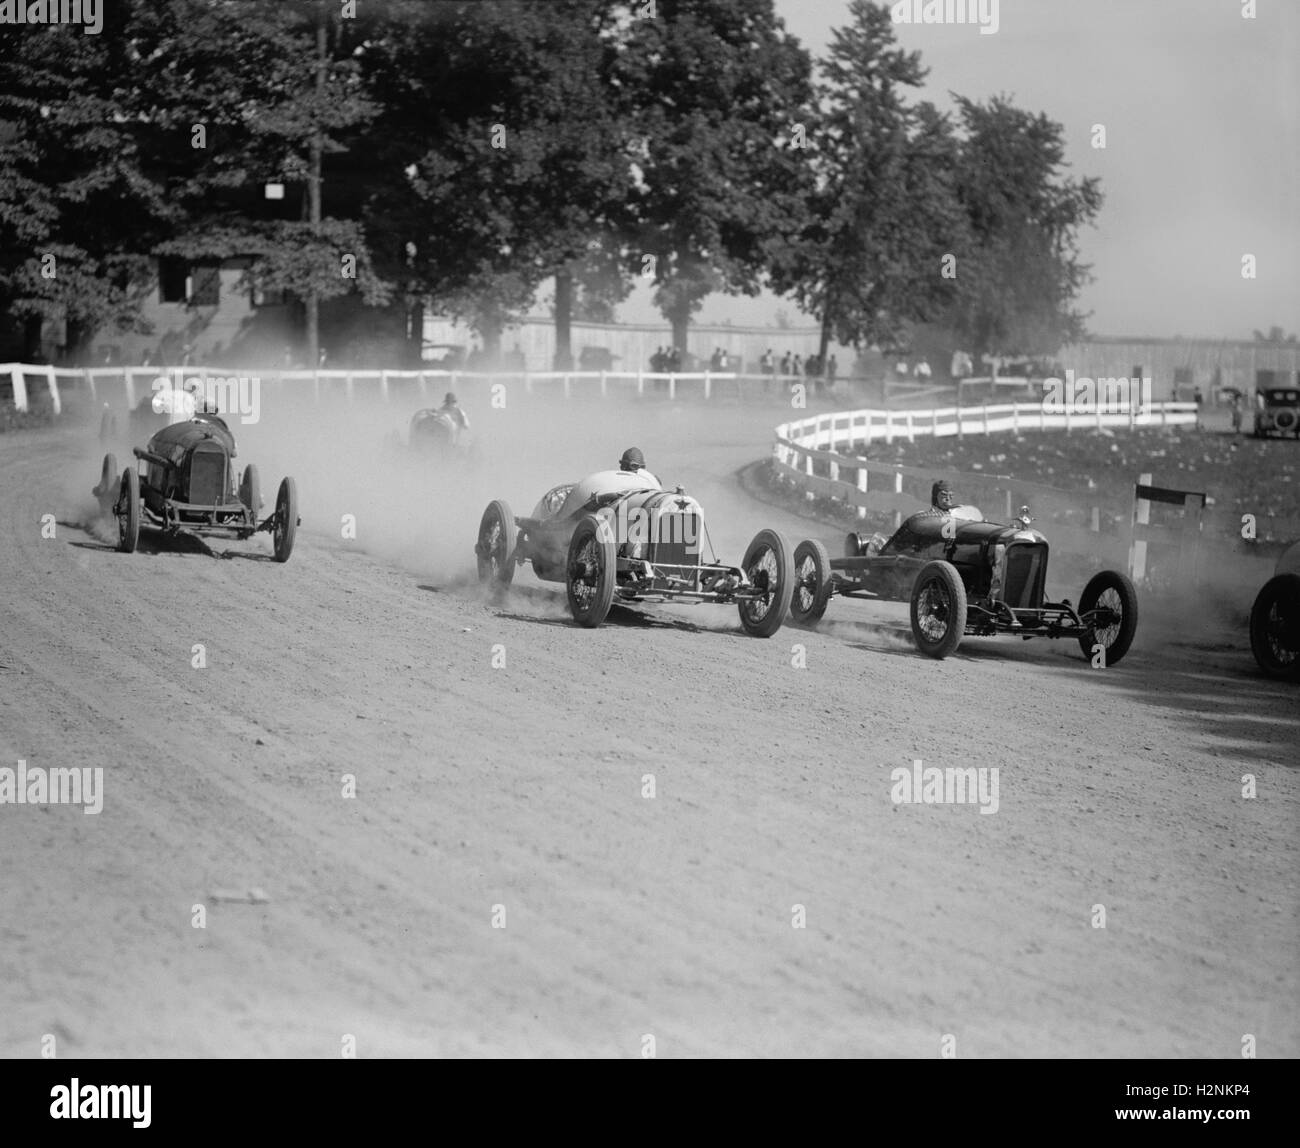 Auto Race, Rockville Fair, Rockville, Maryland, USA, National Photo Company, August 1923 - Stock Image